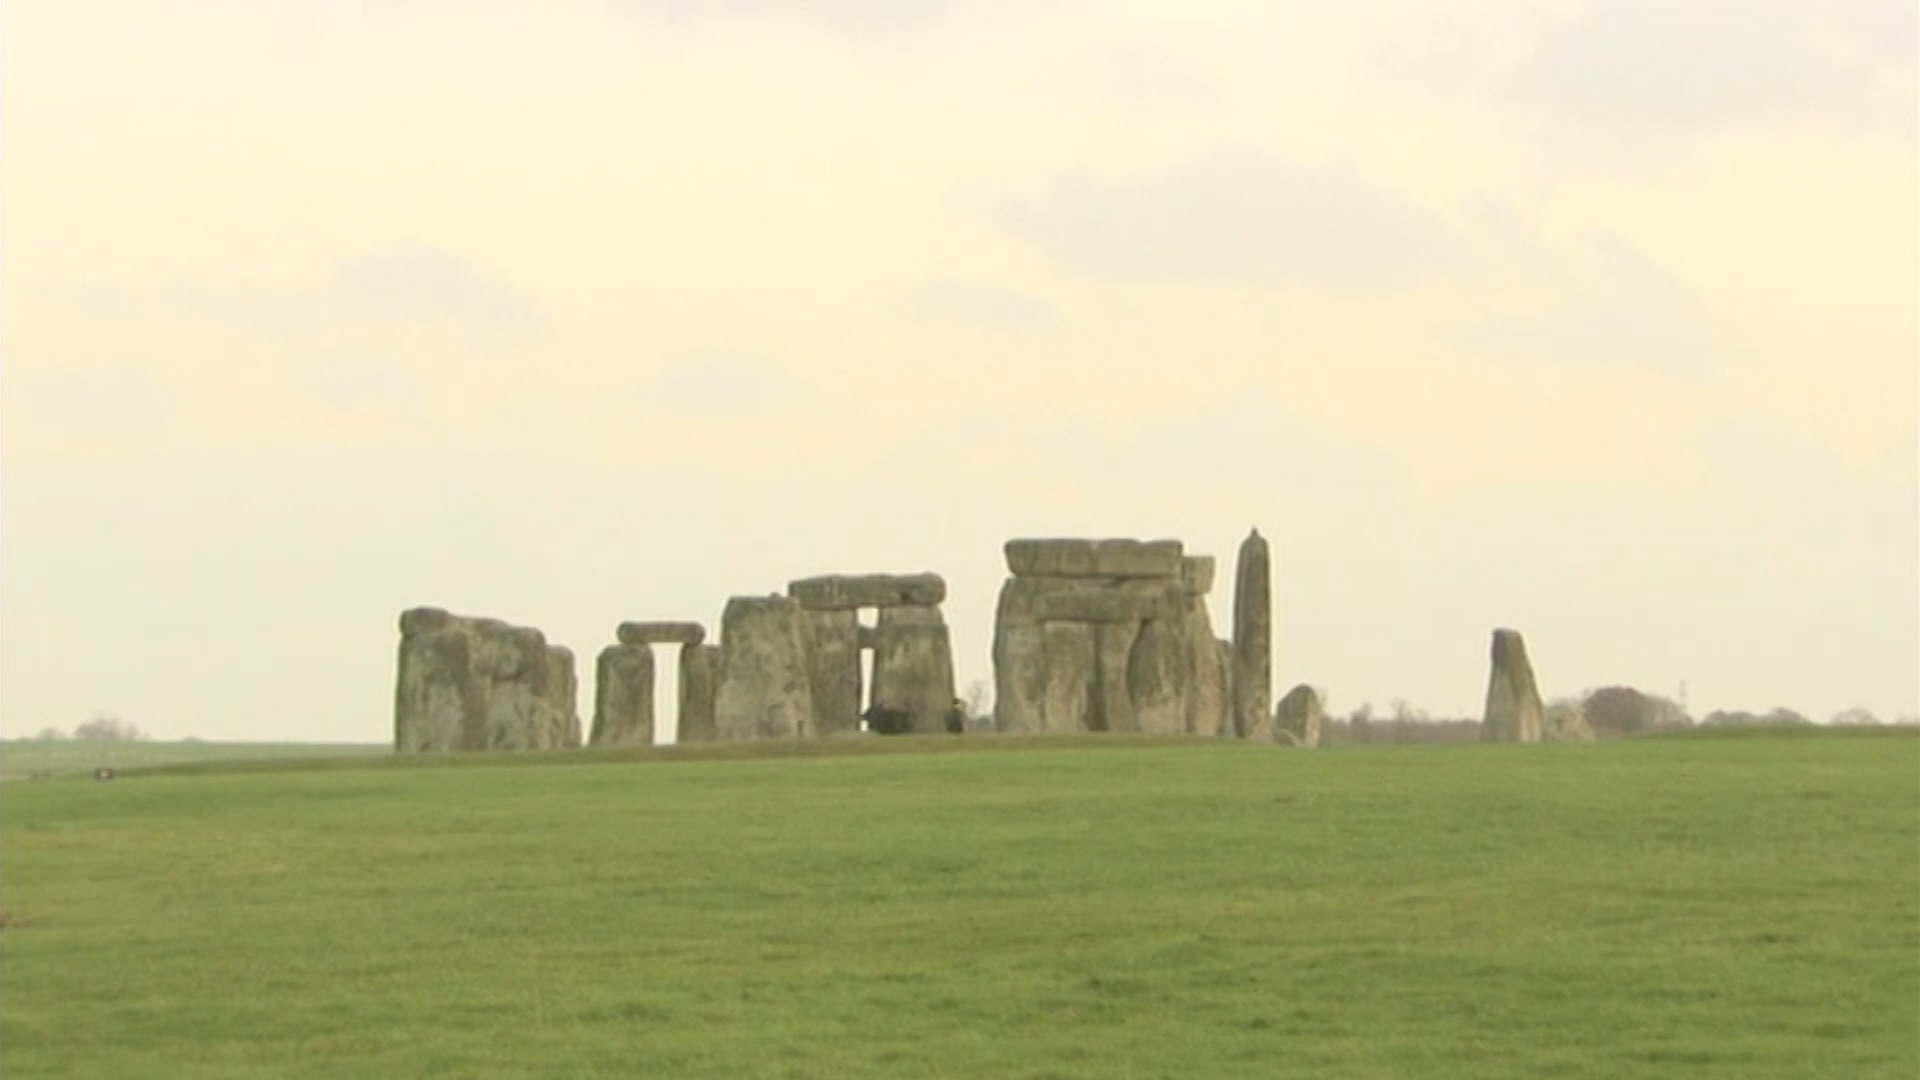 Missing piece of Stonehenge returned after missing for 60 years